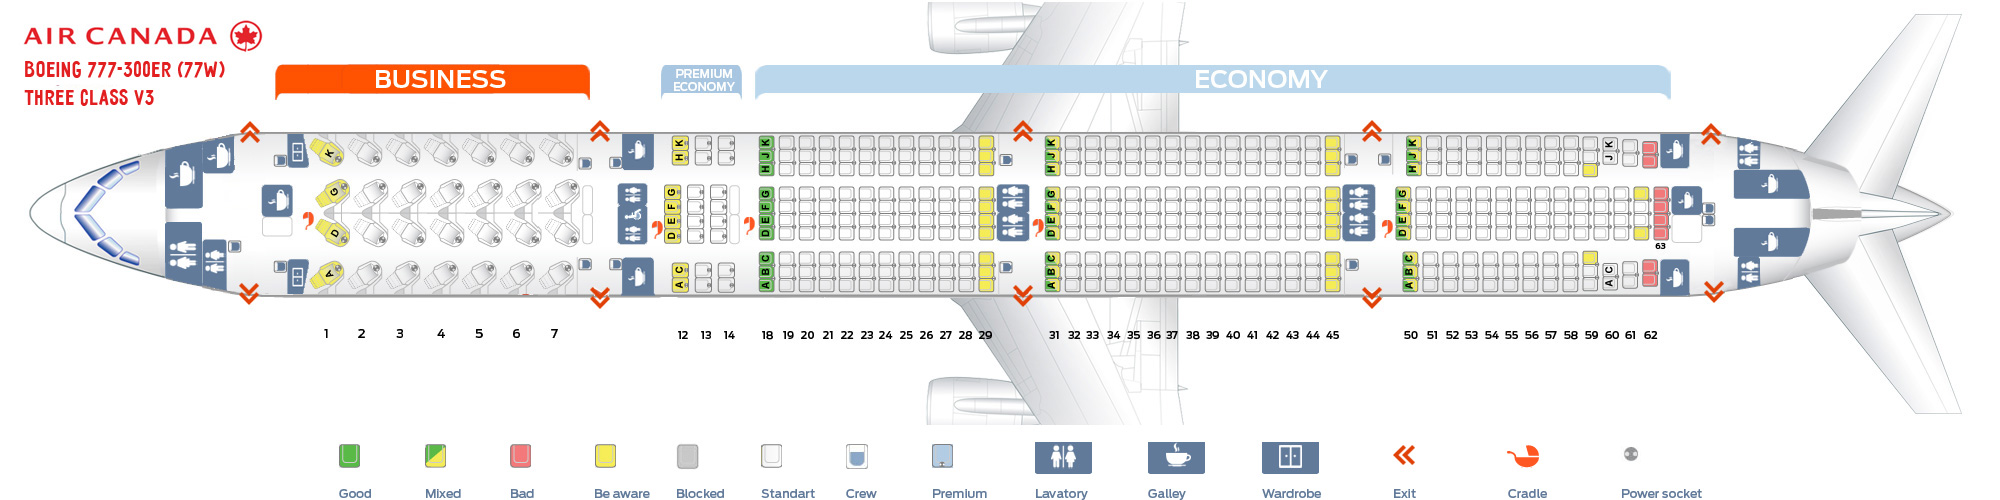 Seat map Boeing 777-300 Air Canada version 3